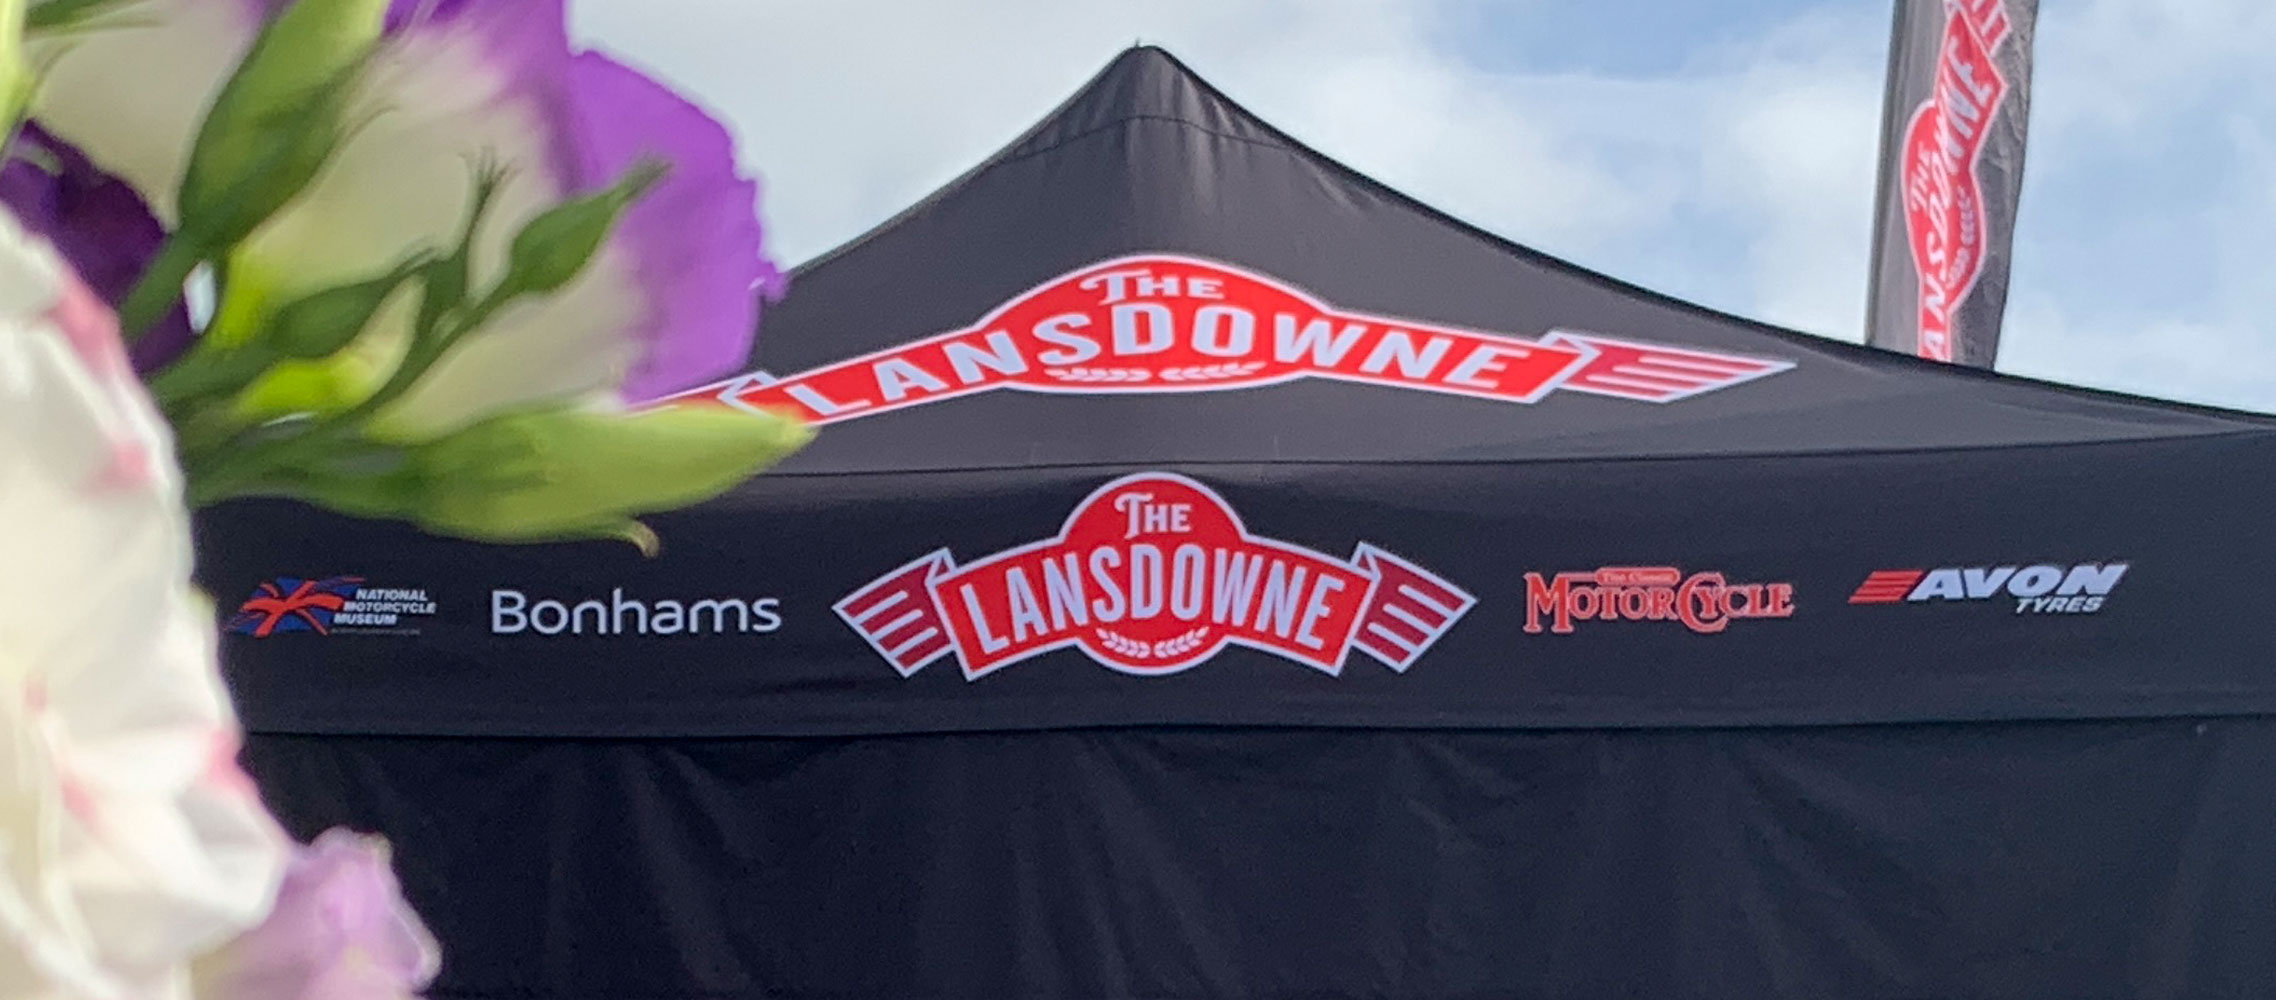 The Lansdowne Classic Motorcycle racing